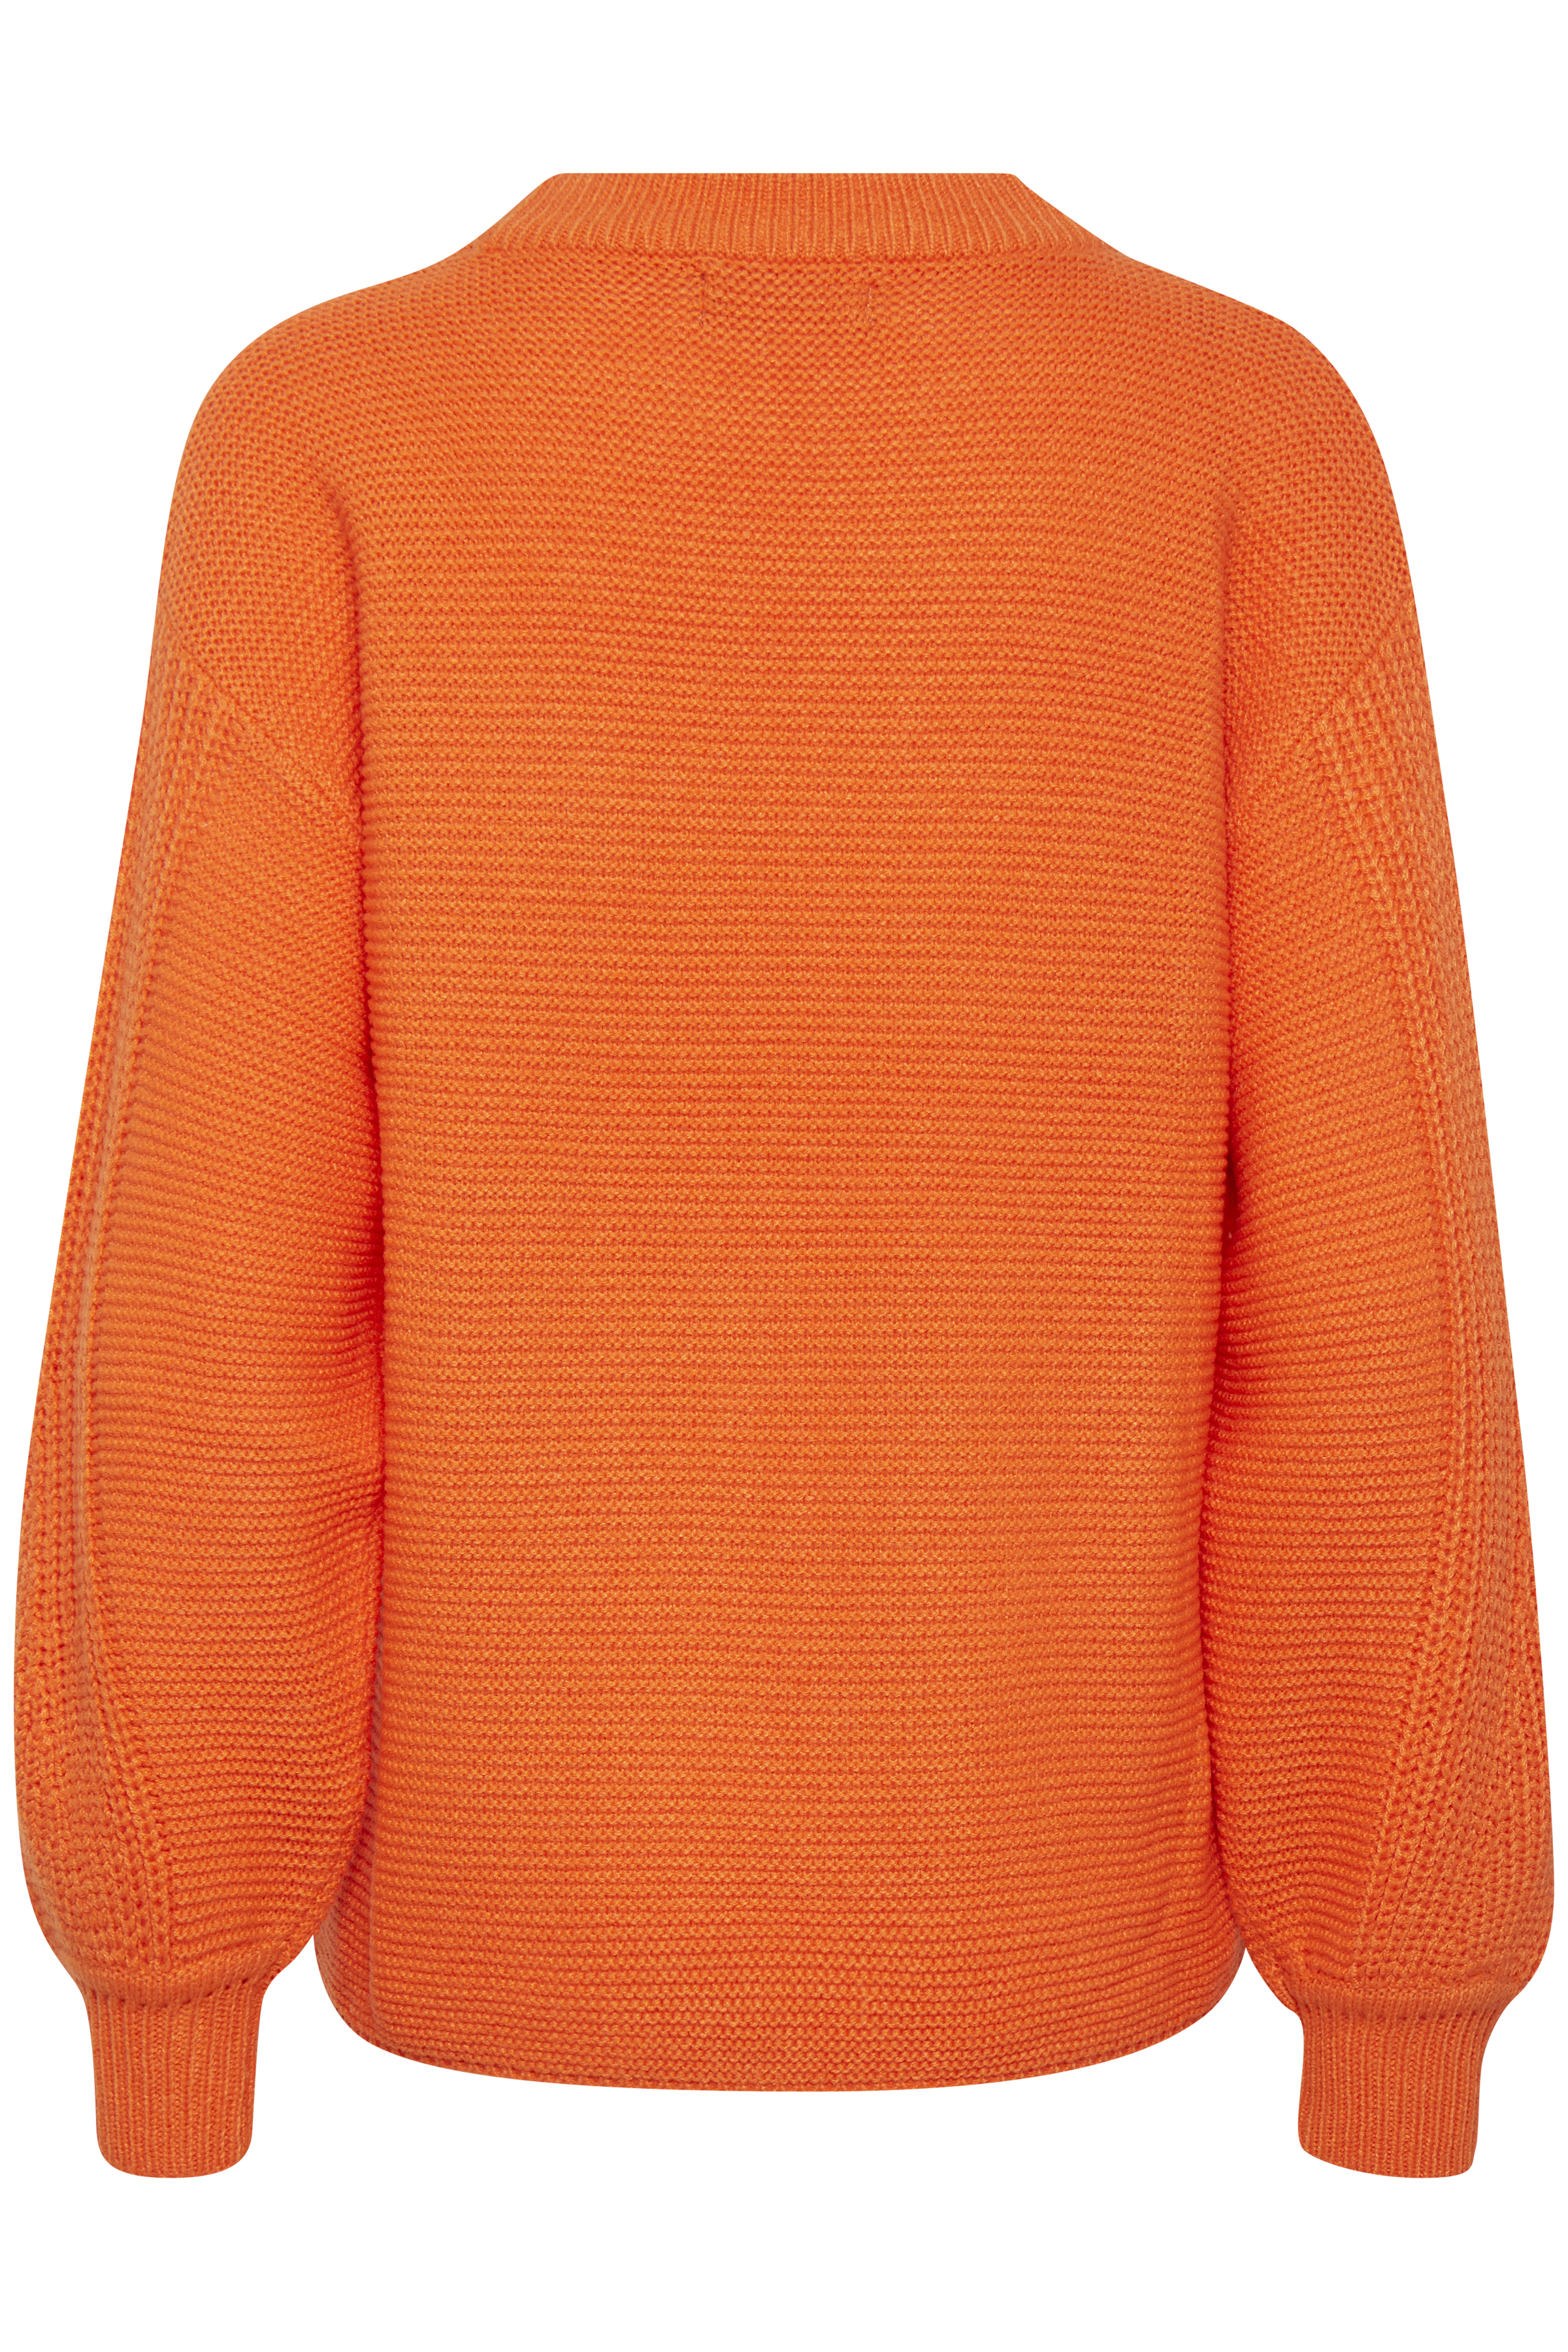 Tulip Orange Knitted pullover from b.young – Buy Tulip Orange Knitted pullover from size S-XXL here